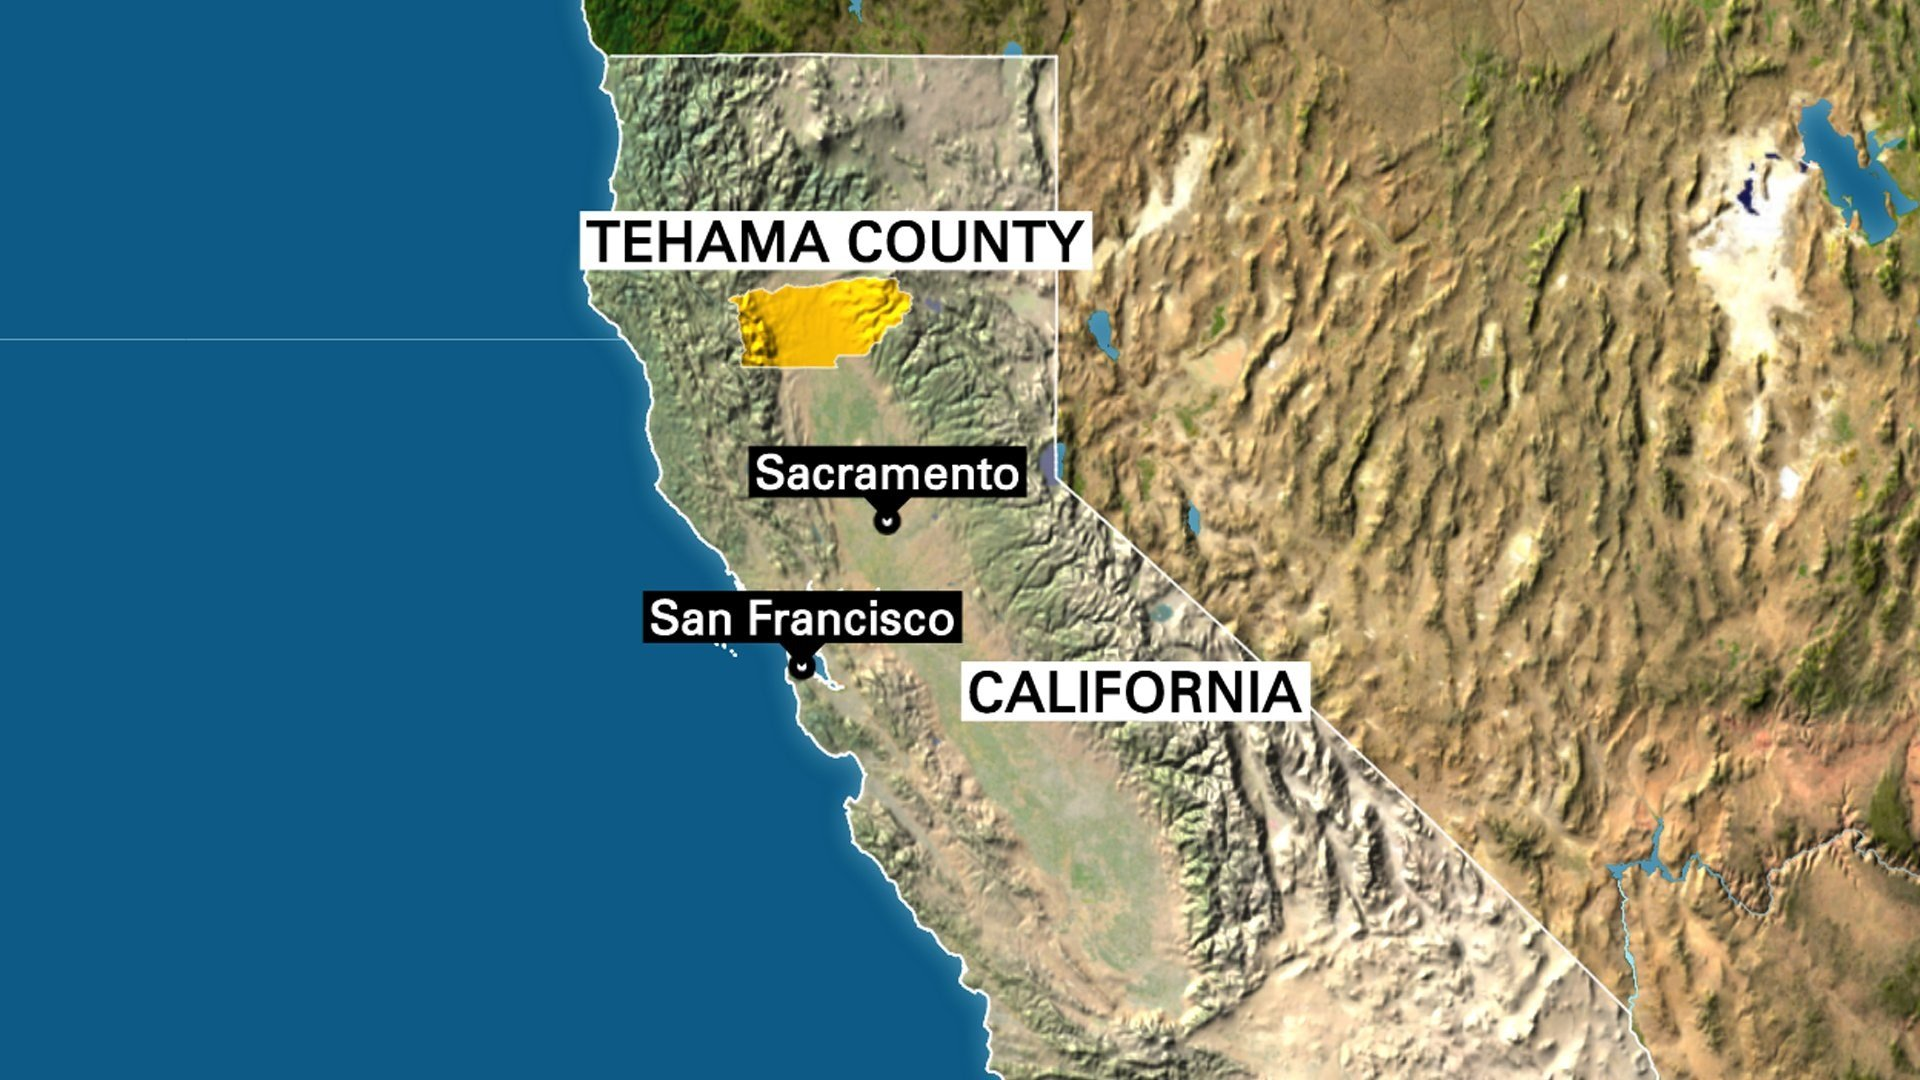 At least five people were killed Tuesday in northern California's Tehama County, Assistant Sheriff Phil Johnston said.